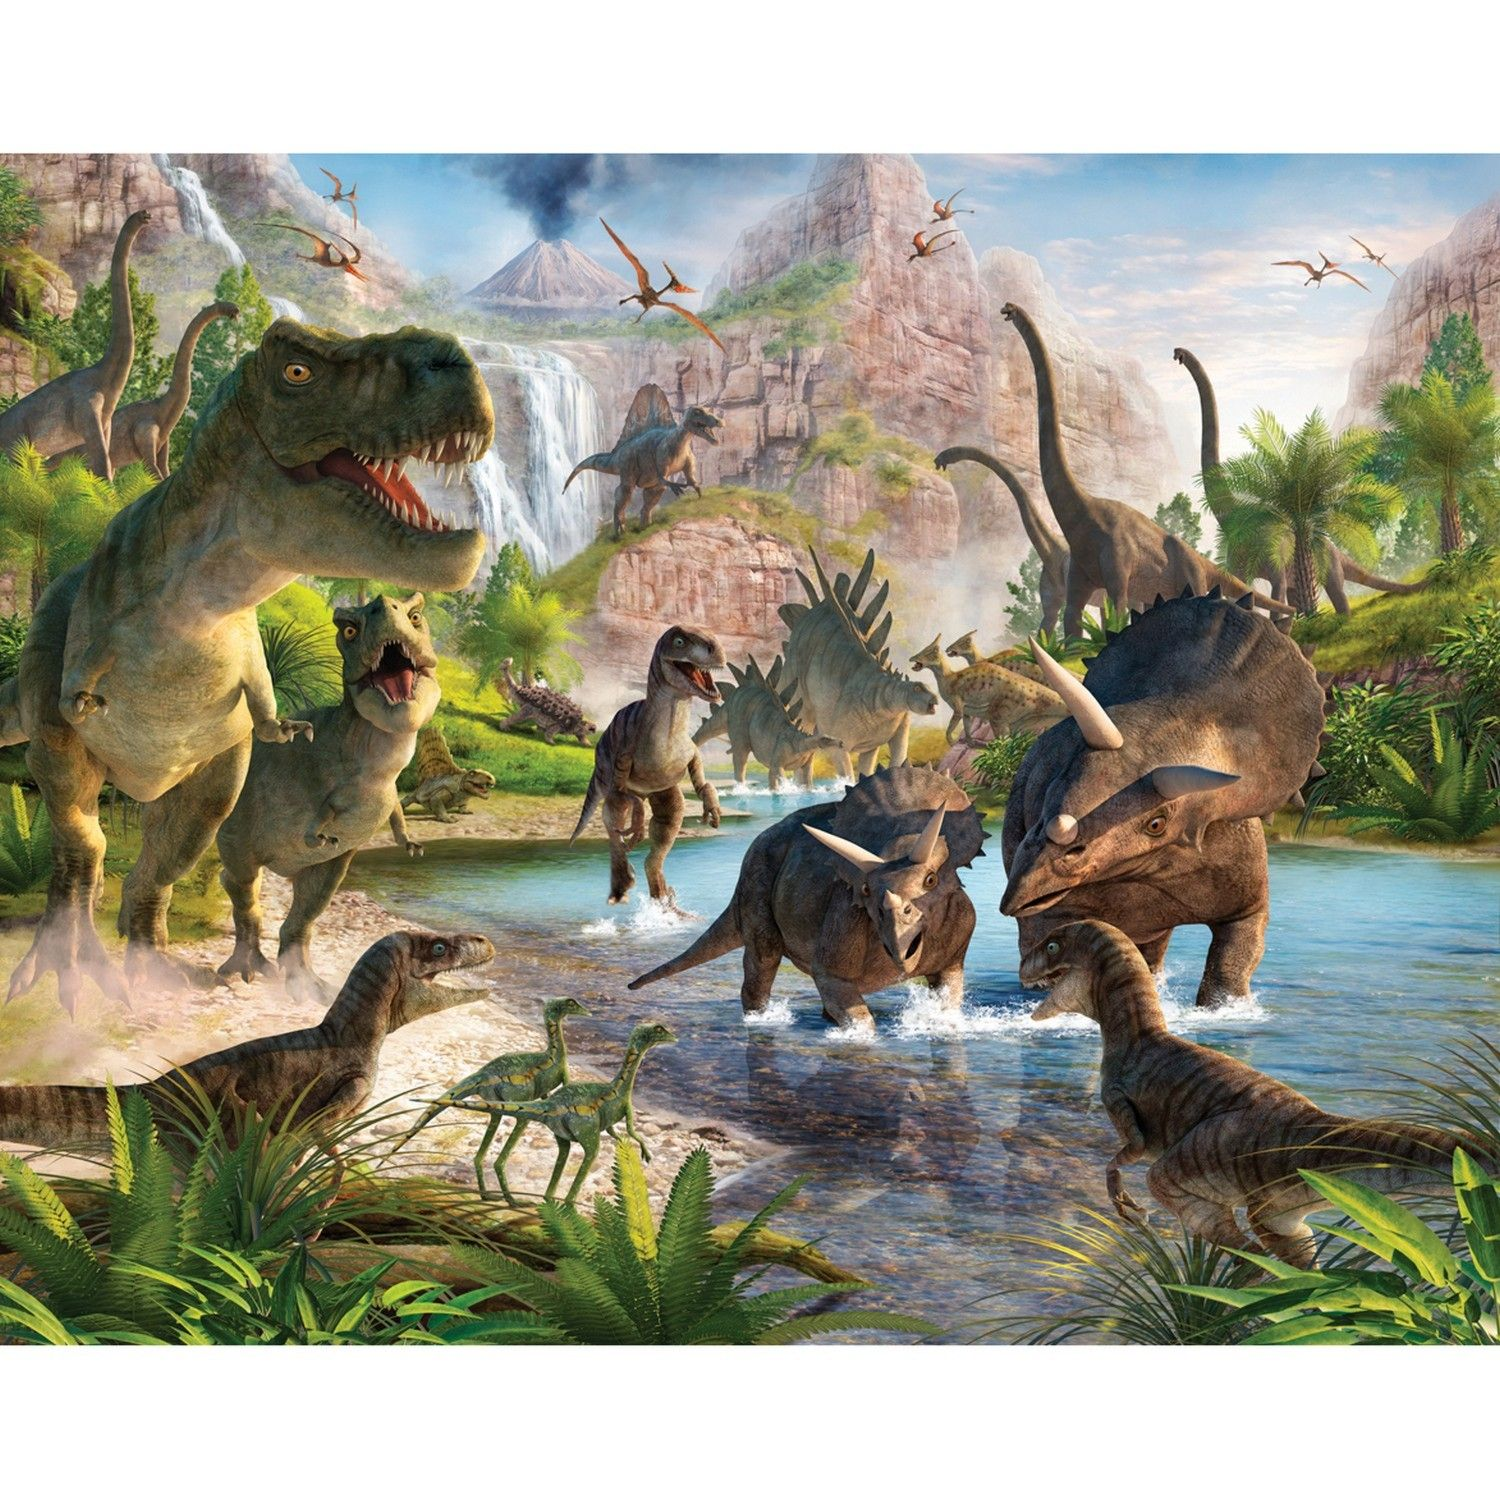 3D Dinosaur Wallpaper Personalized Custom Wall Murals